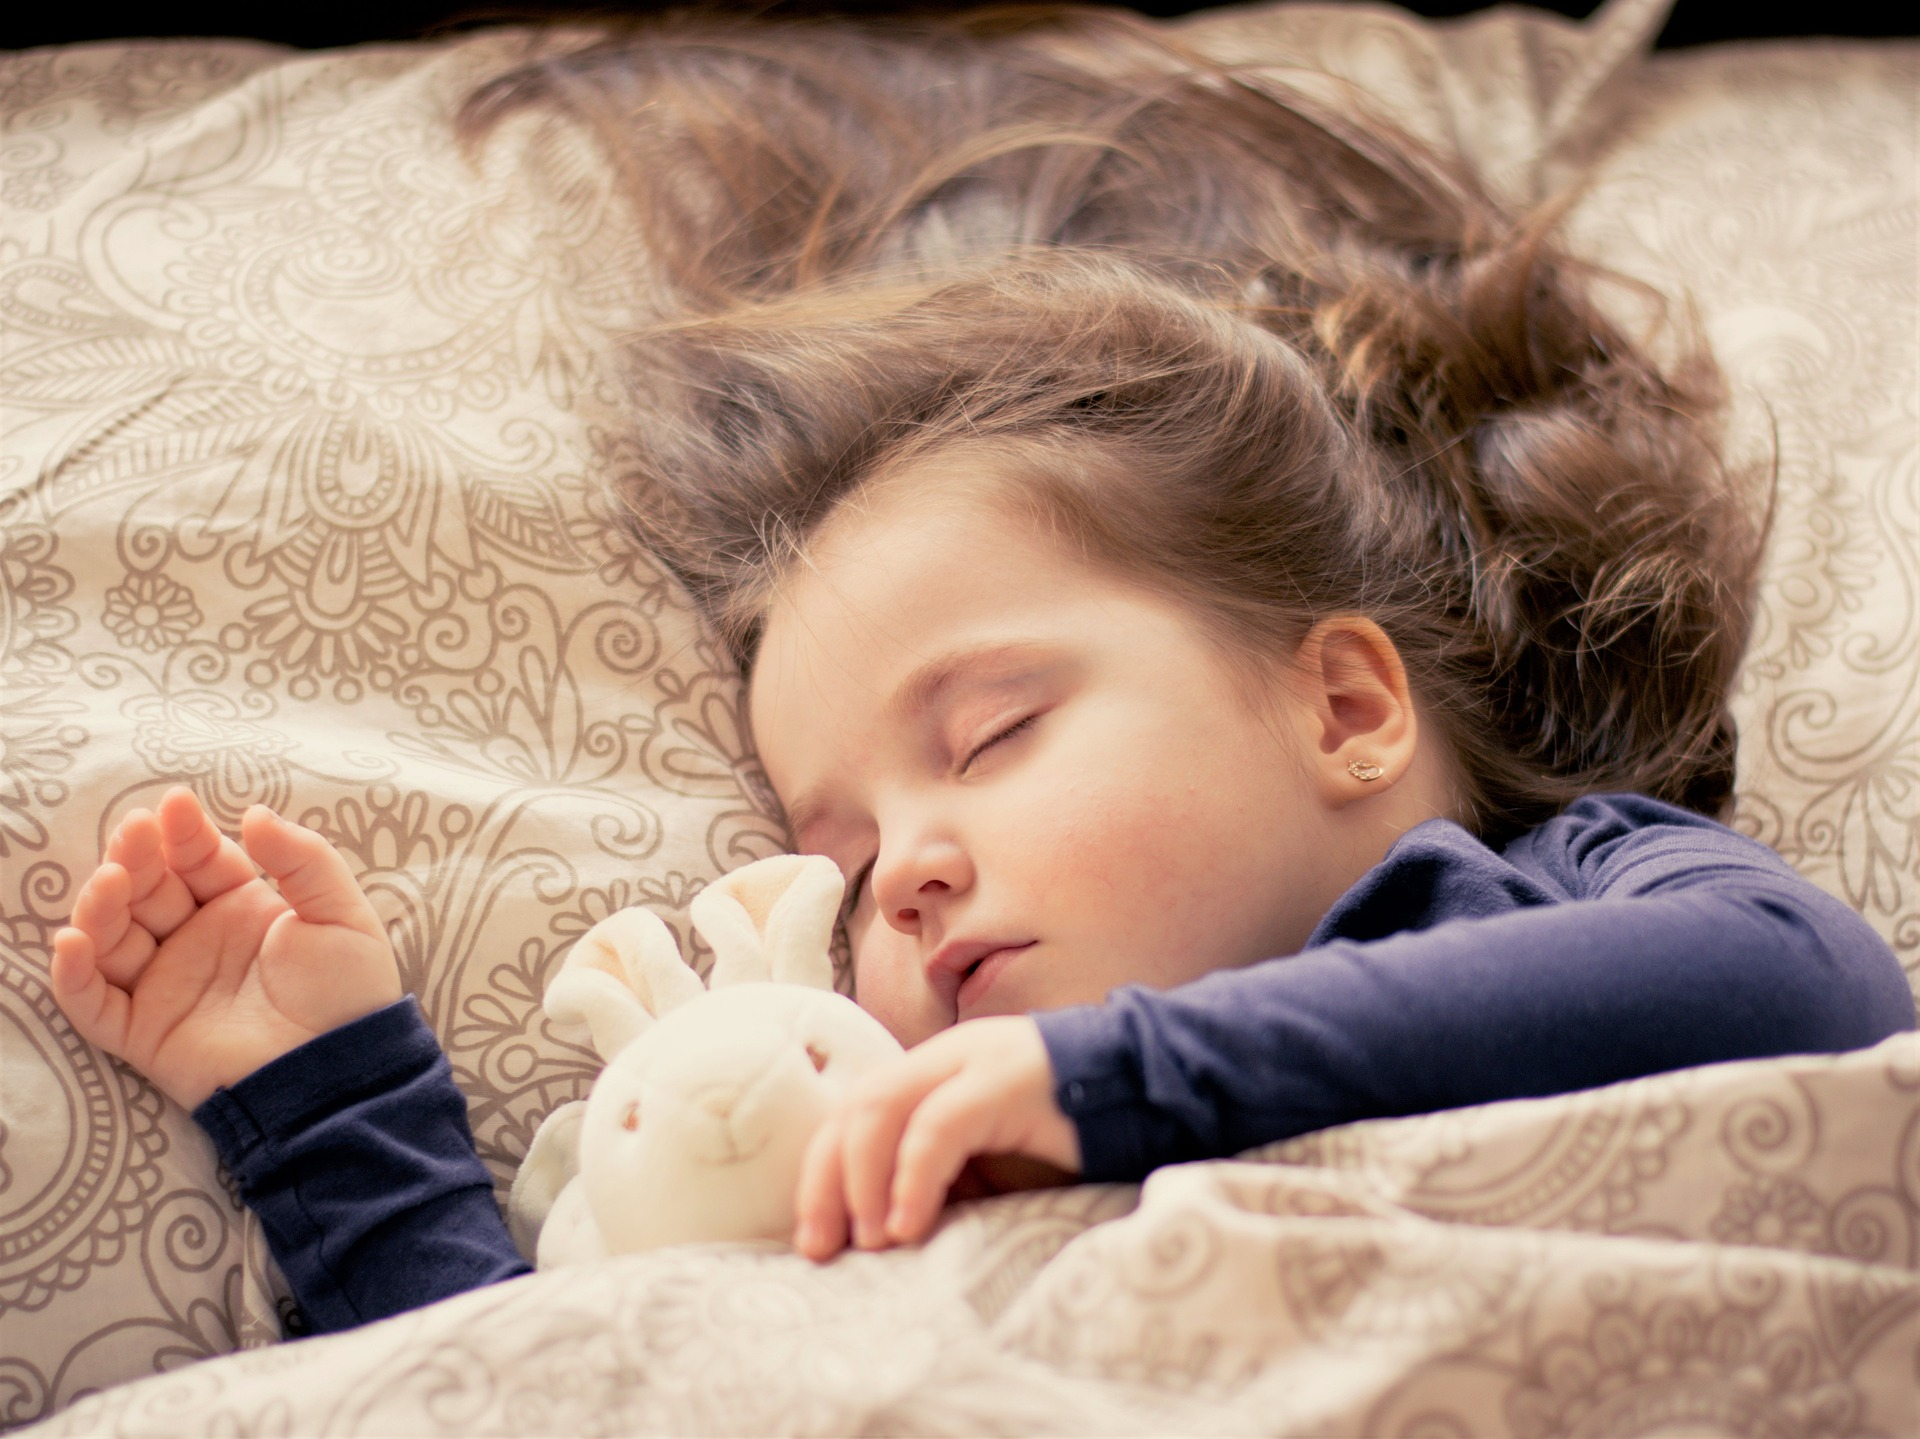 A child sleeping in bed